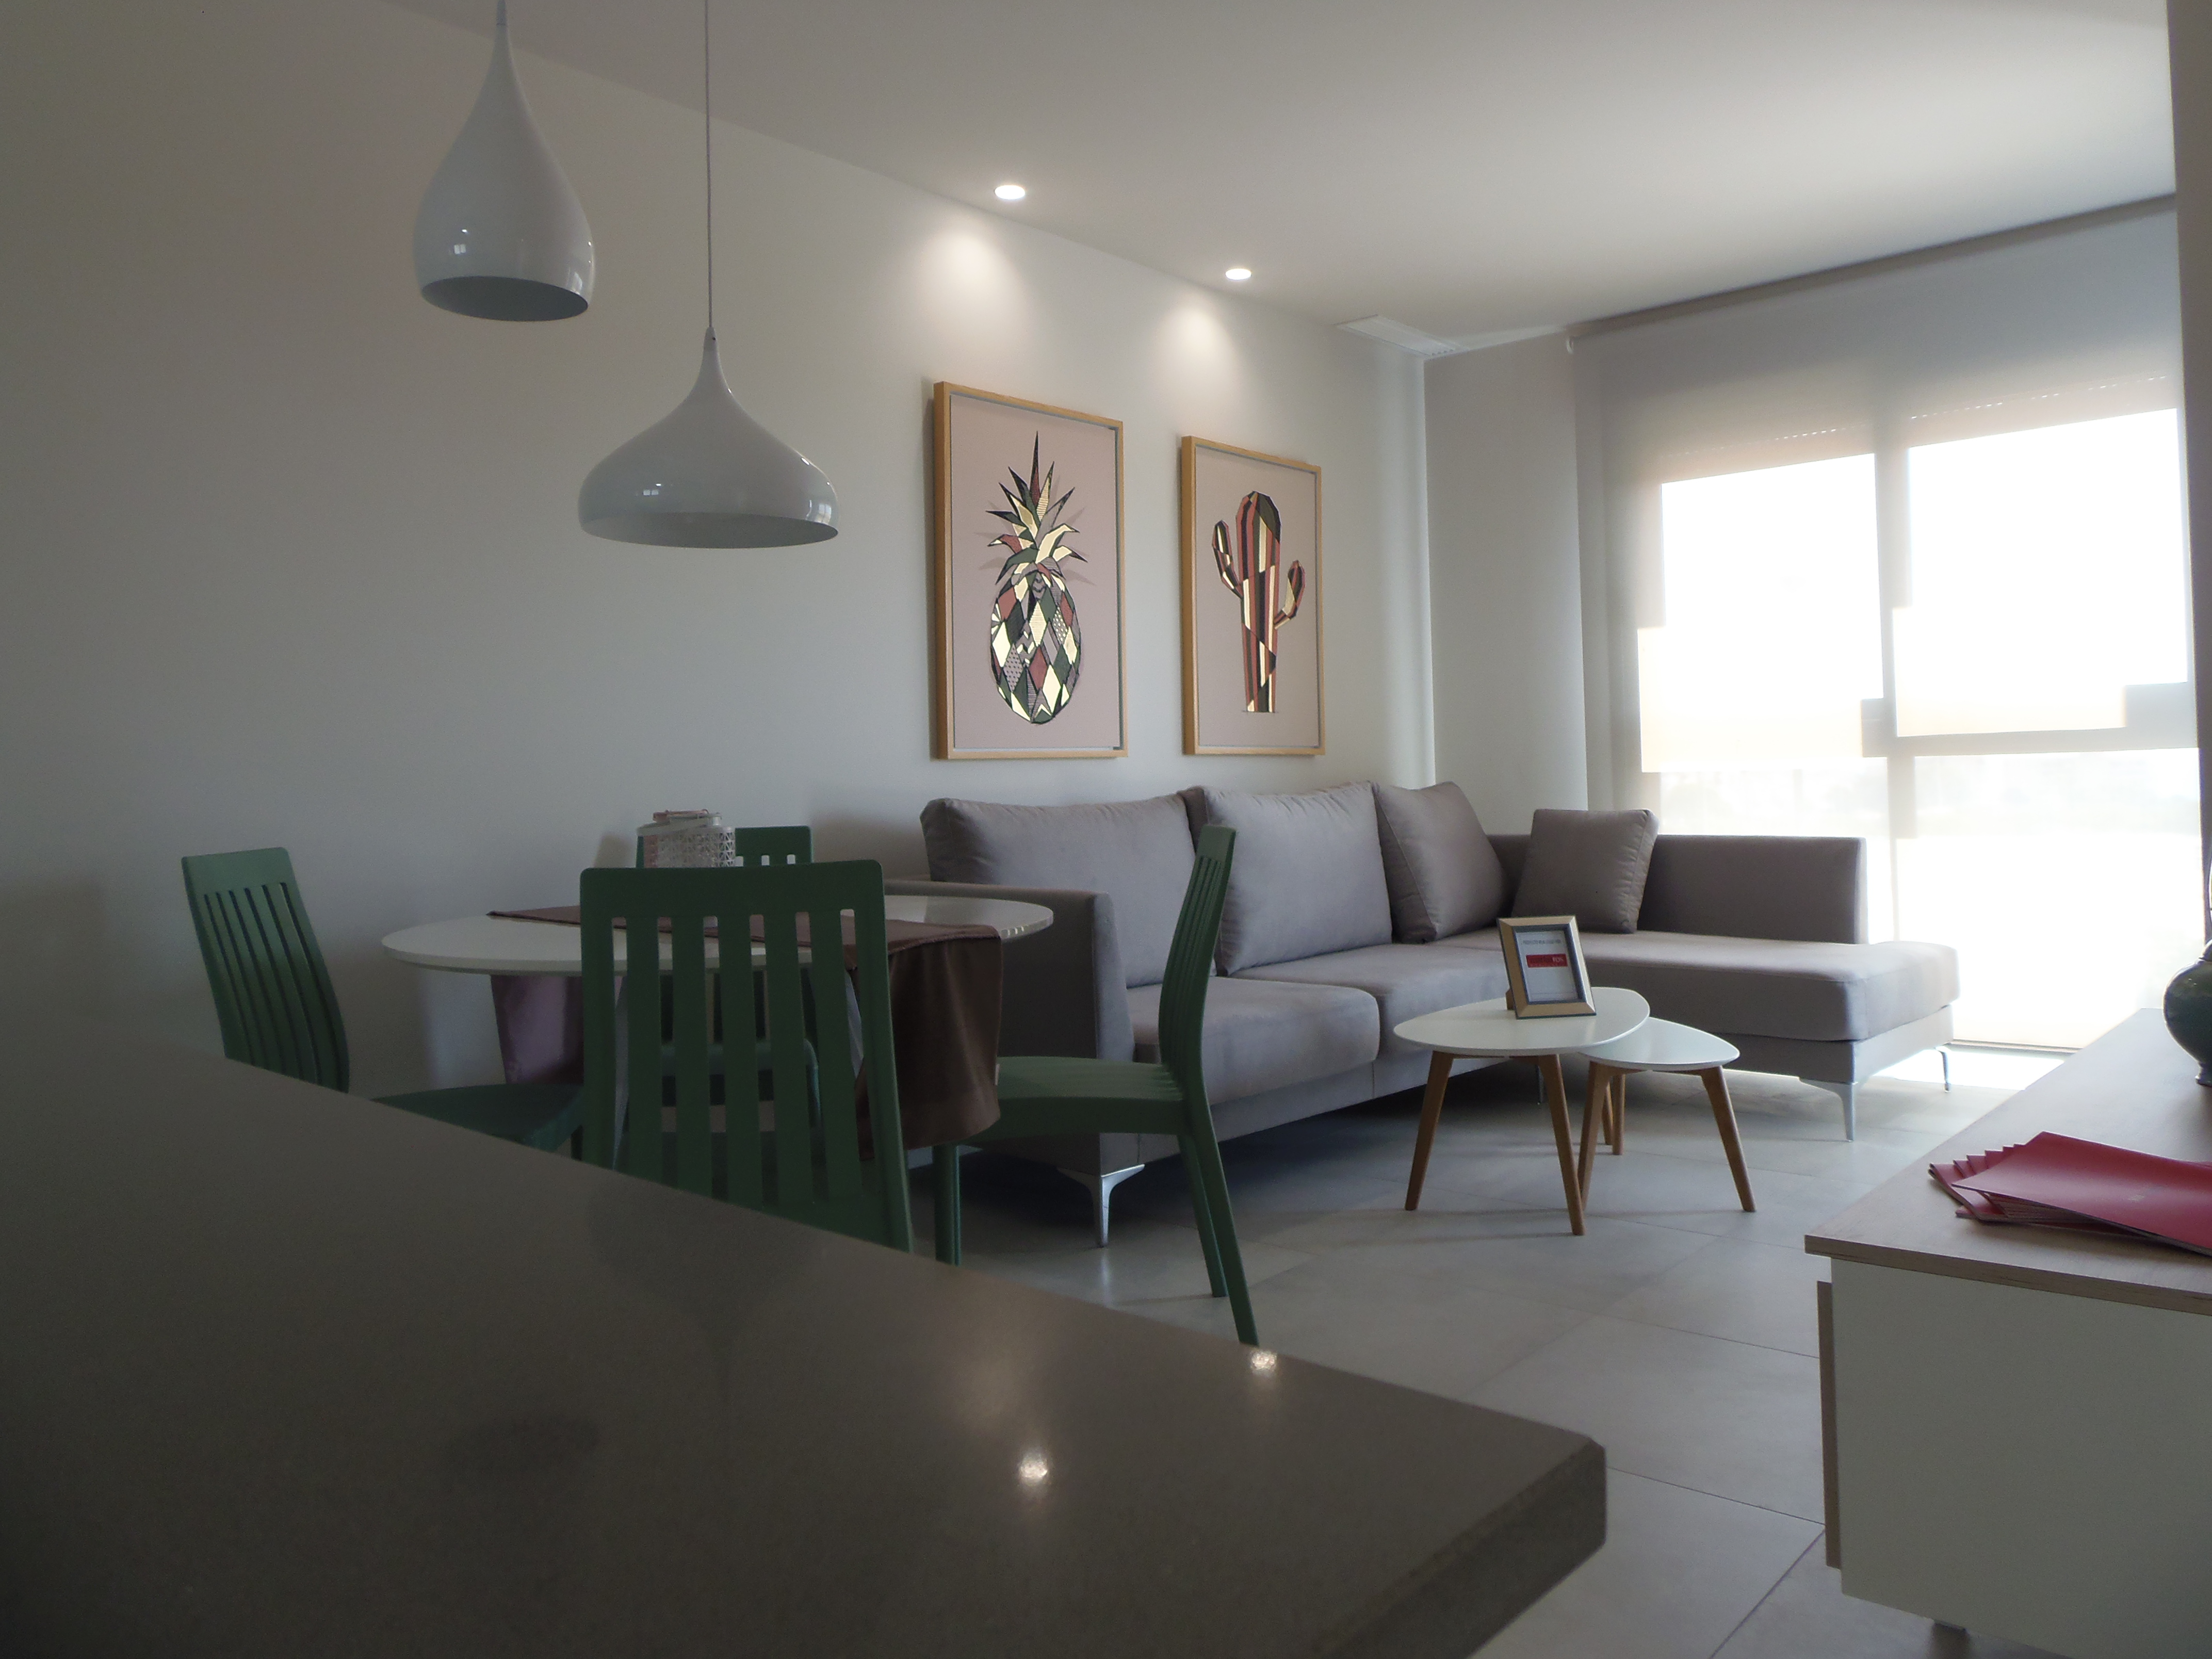 3 bedroom apartment For Sale in Mil Palmeras - photograph 26